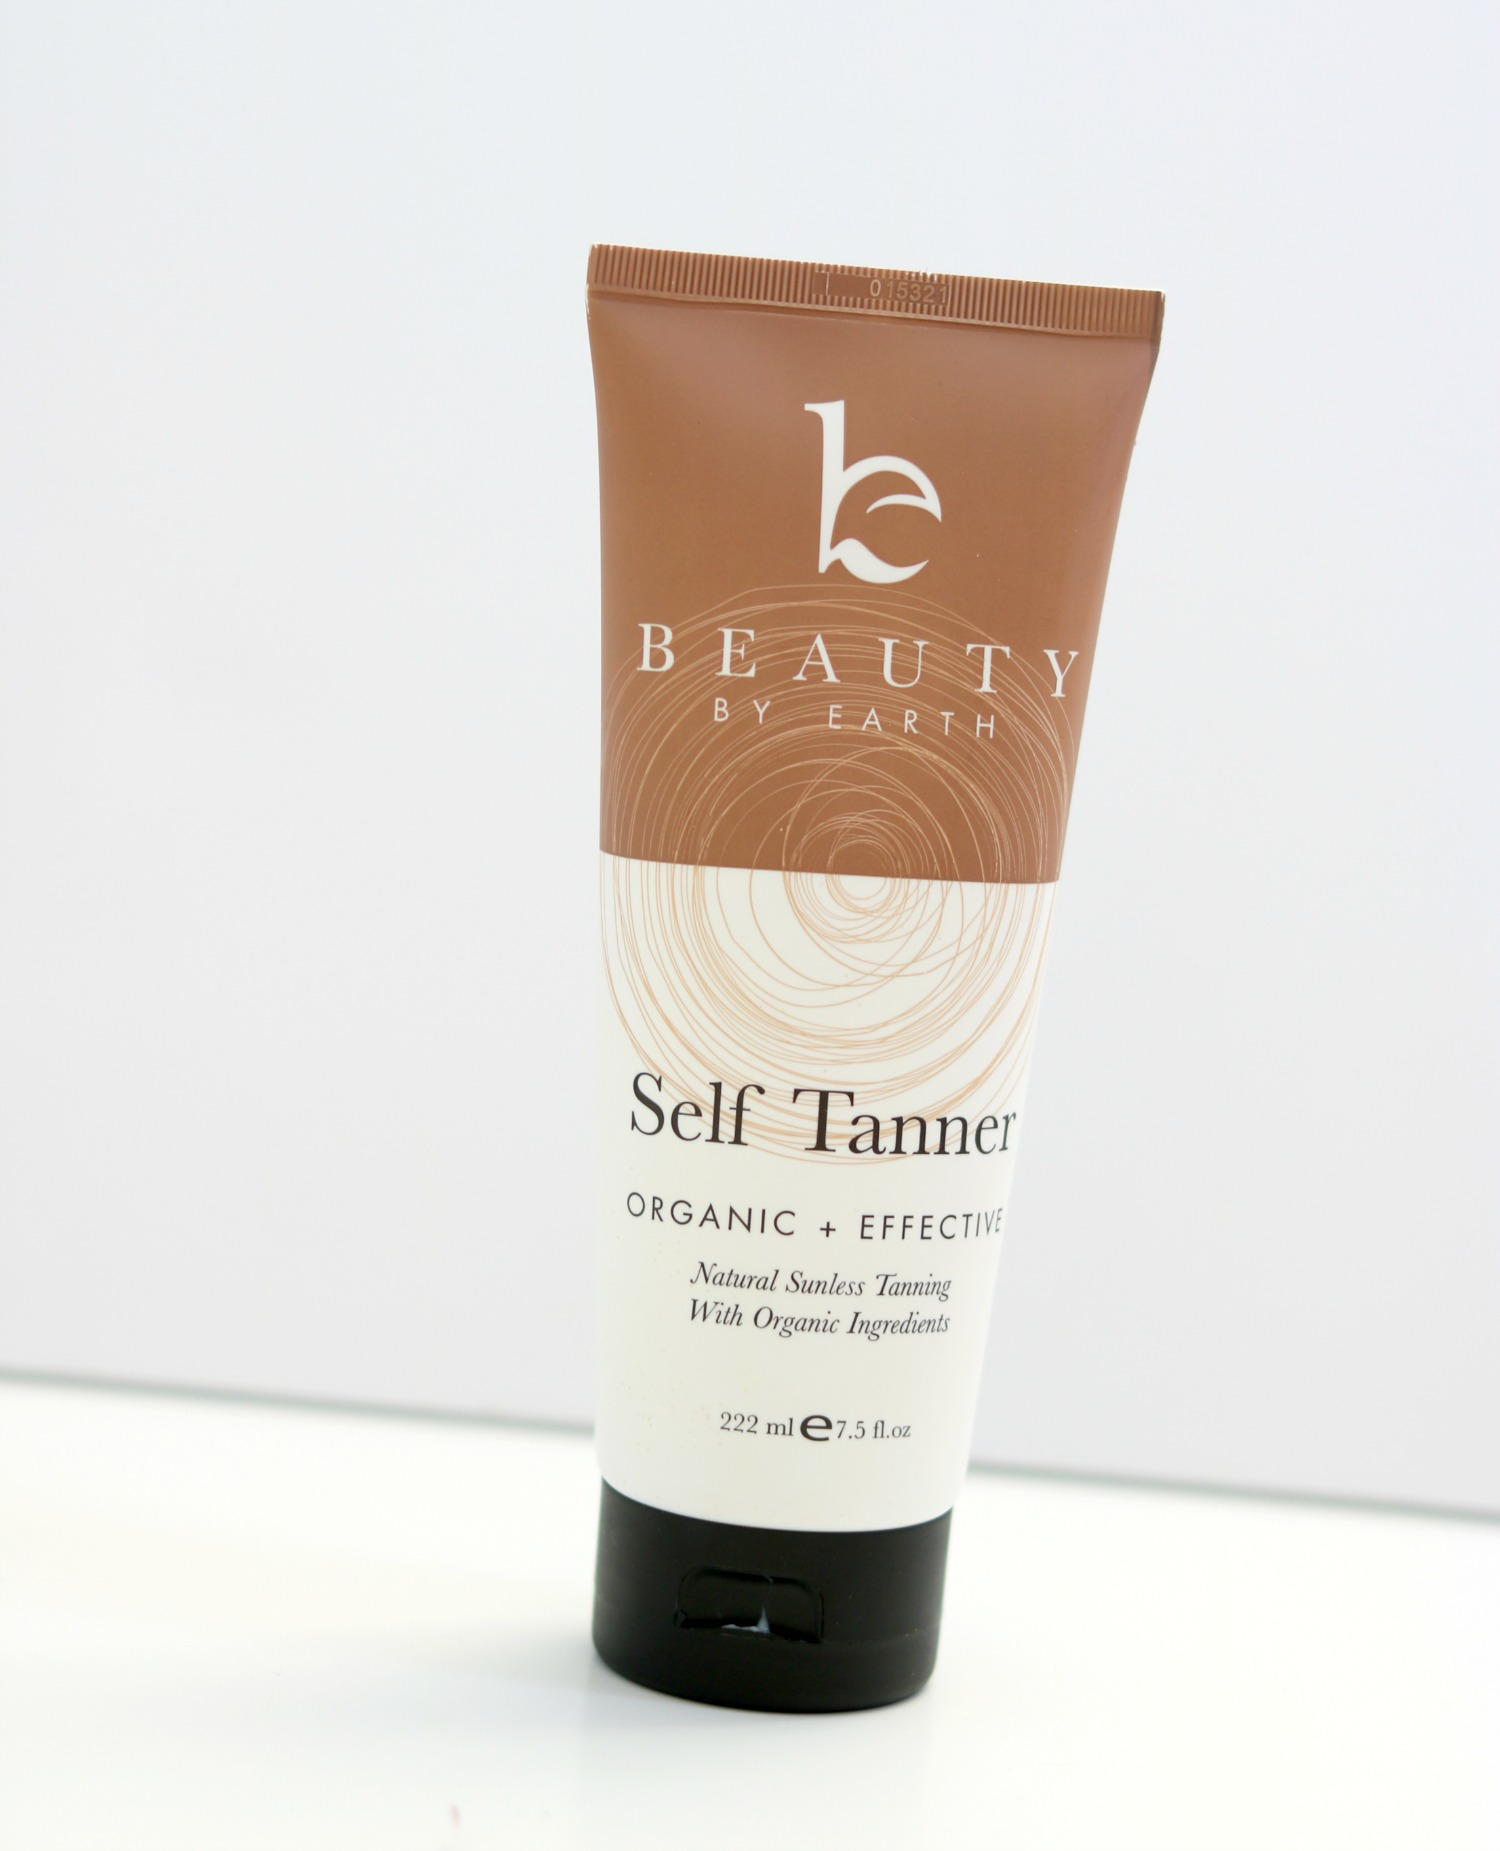 Sunless Tanning: My Tanning Routine & Tips